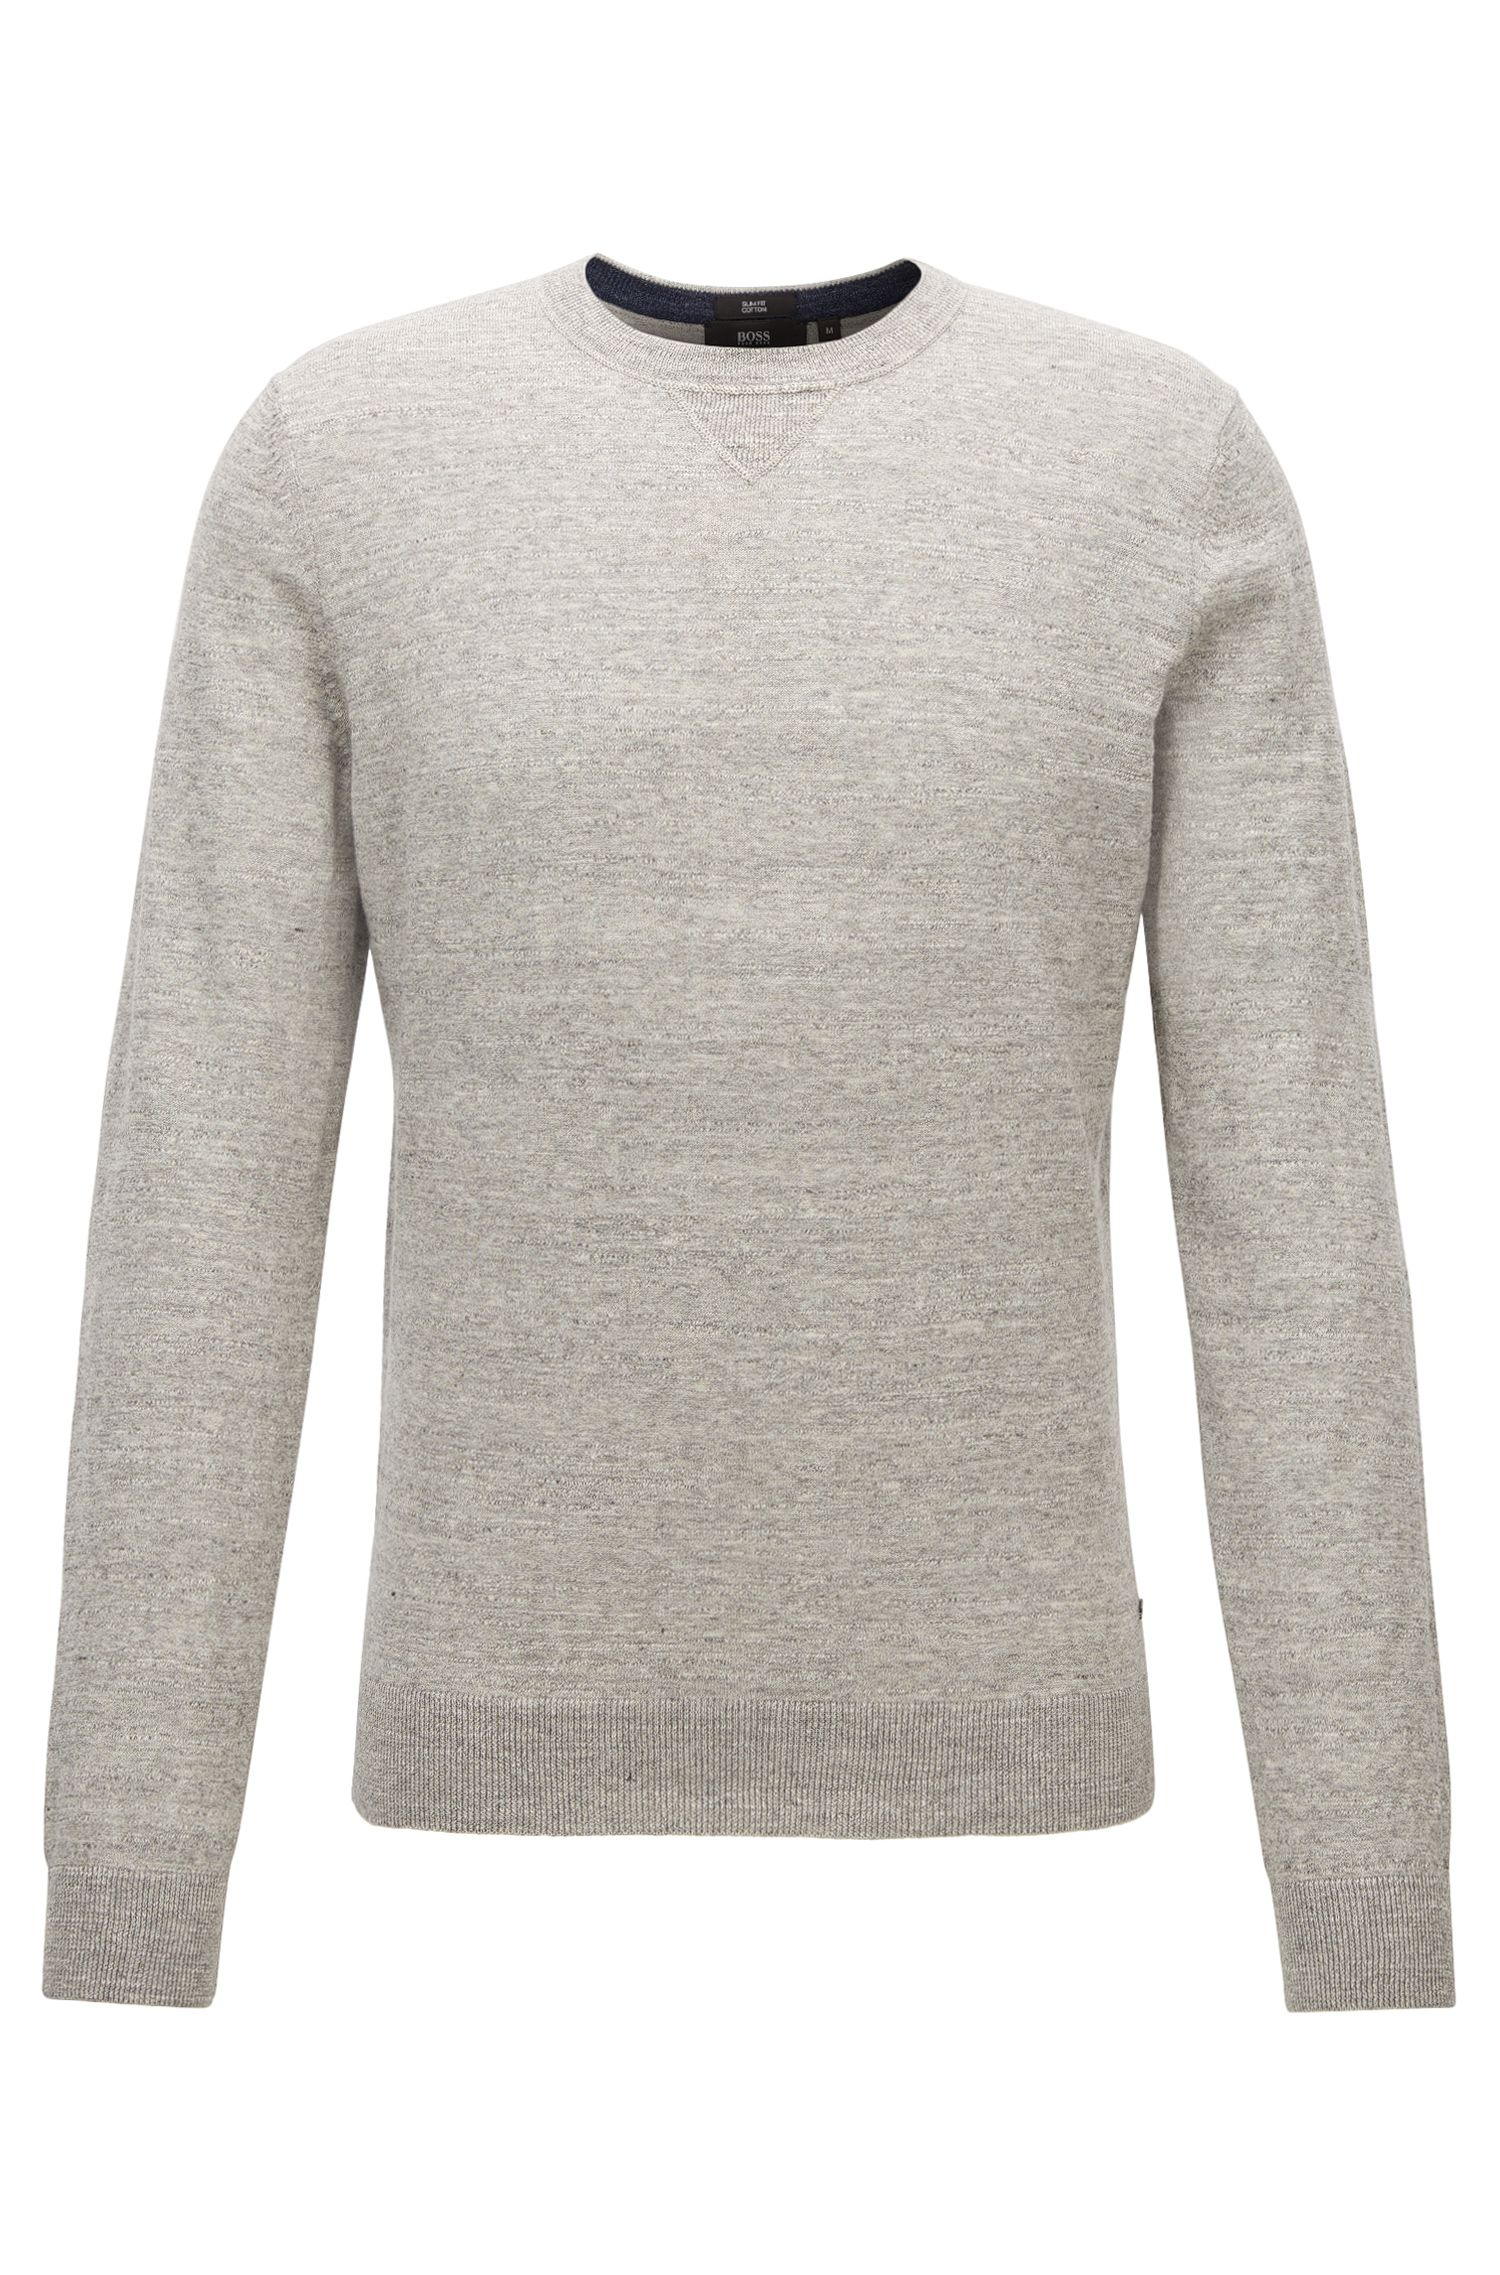 Slim-fit sweater in knitted cotton jersey